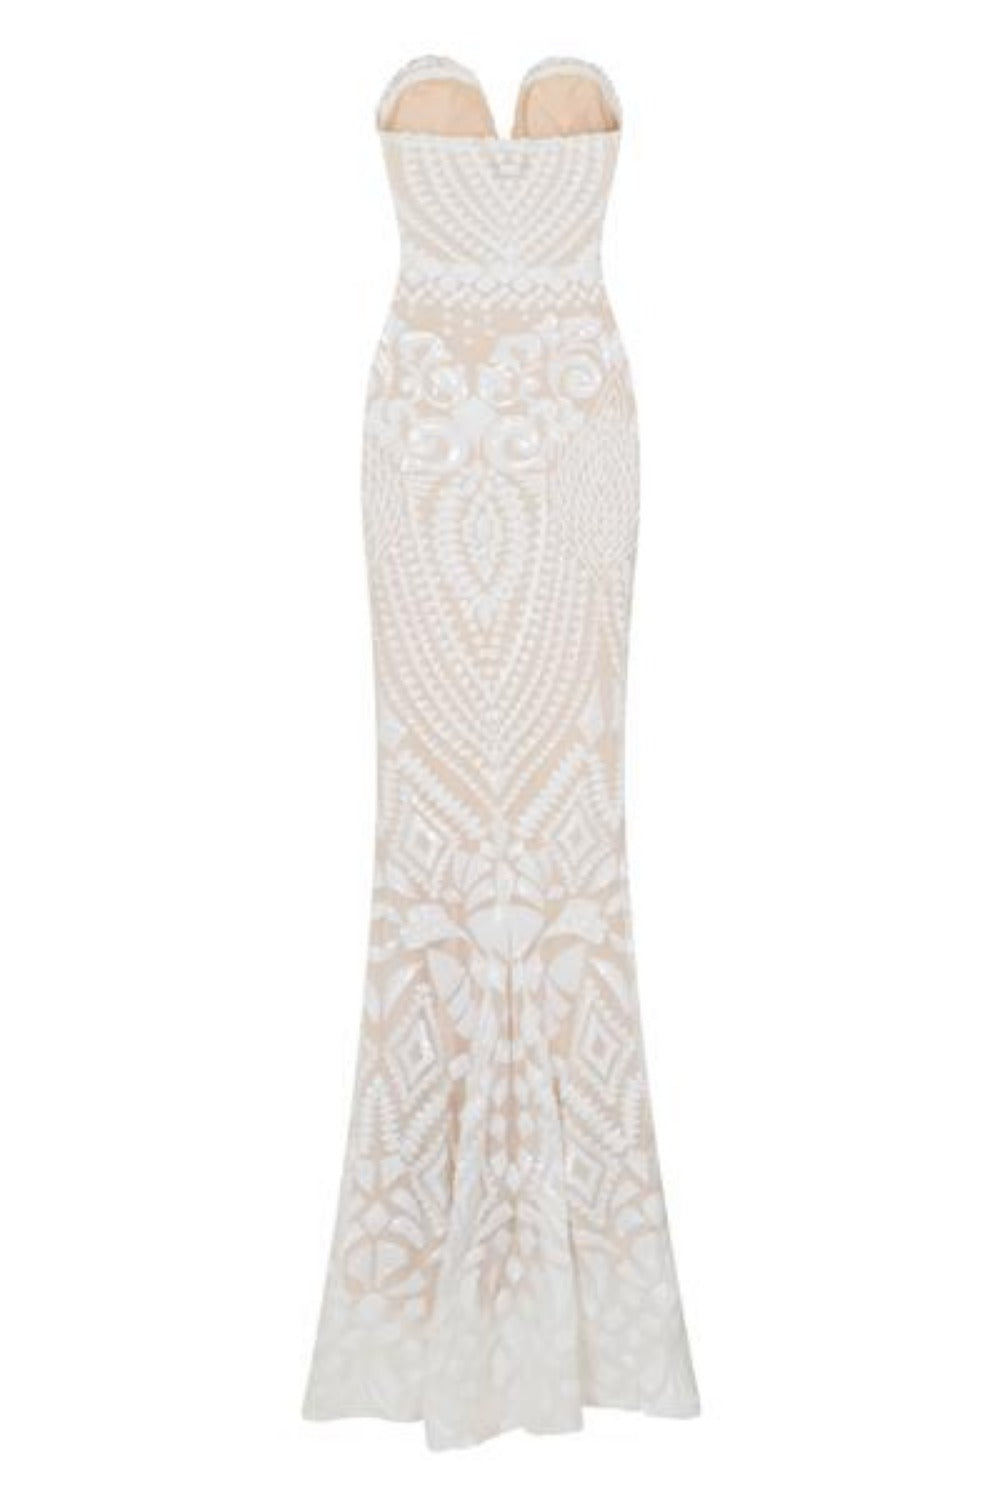 Kenza White Luxe Sweetheart Plunge Sequin Embellished Fishtail Dress